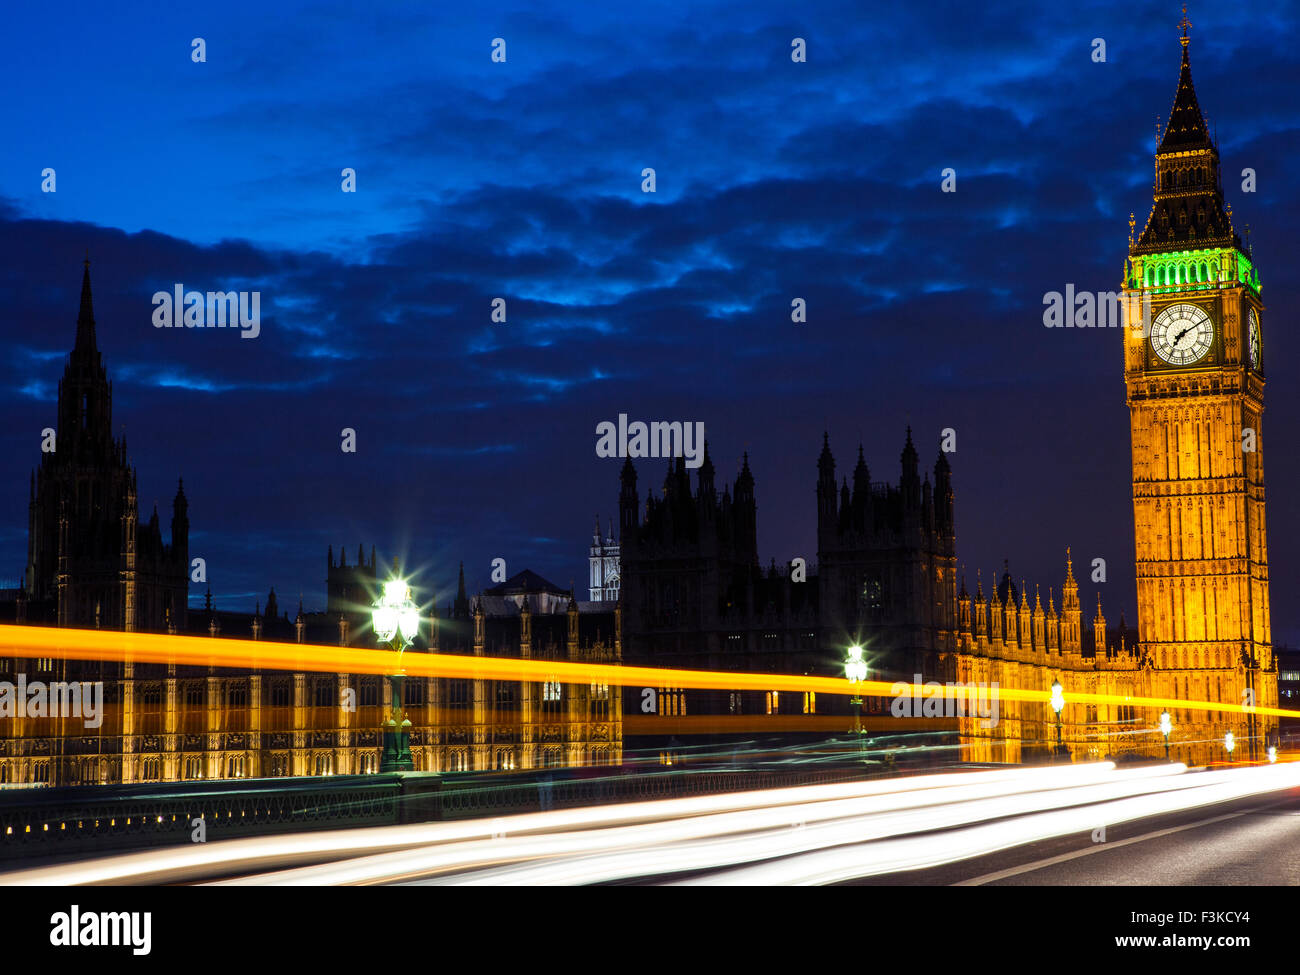 Light trails from London traffic passing by the Houses of Parliament on Westminster Bridge. Stock Photo